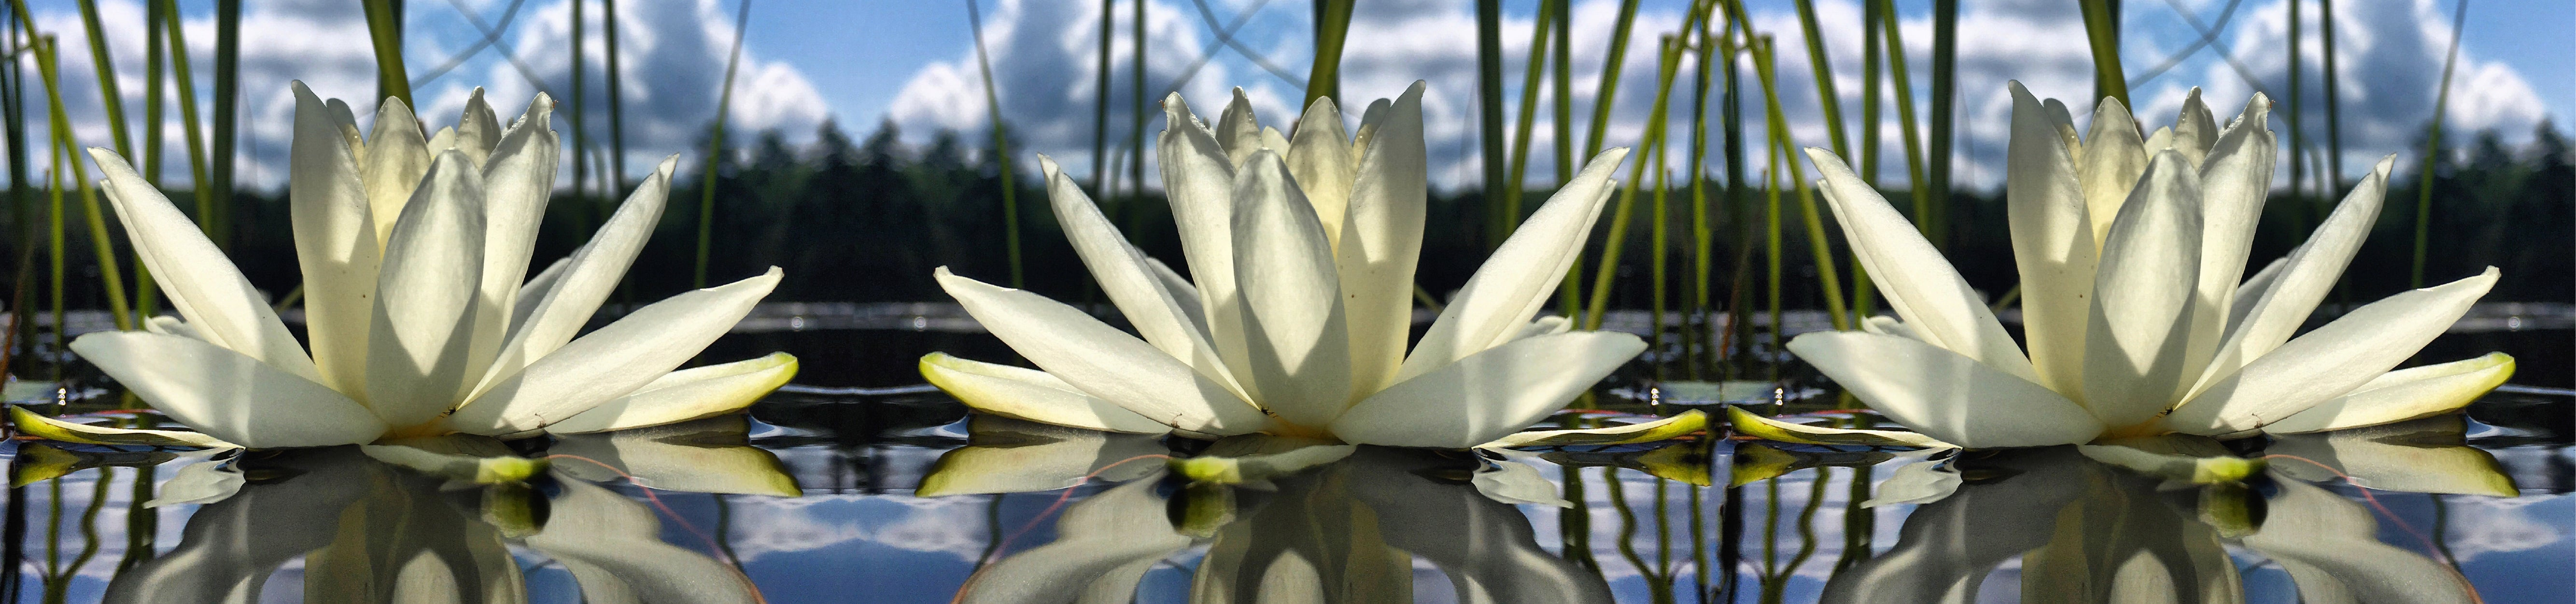 Being Beauty Meditation